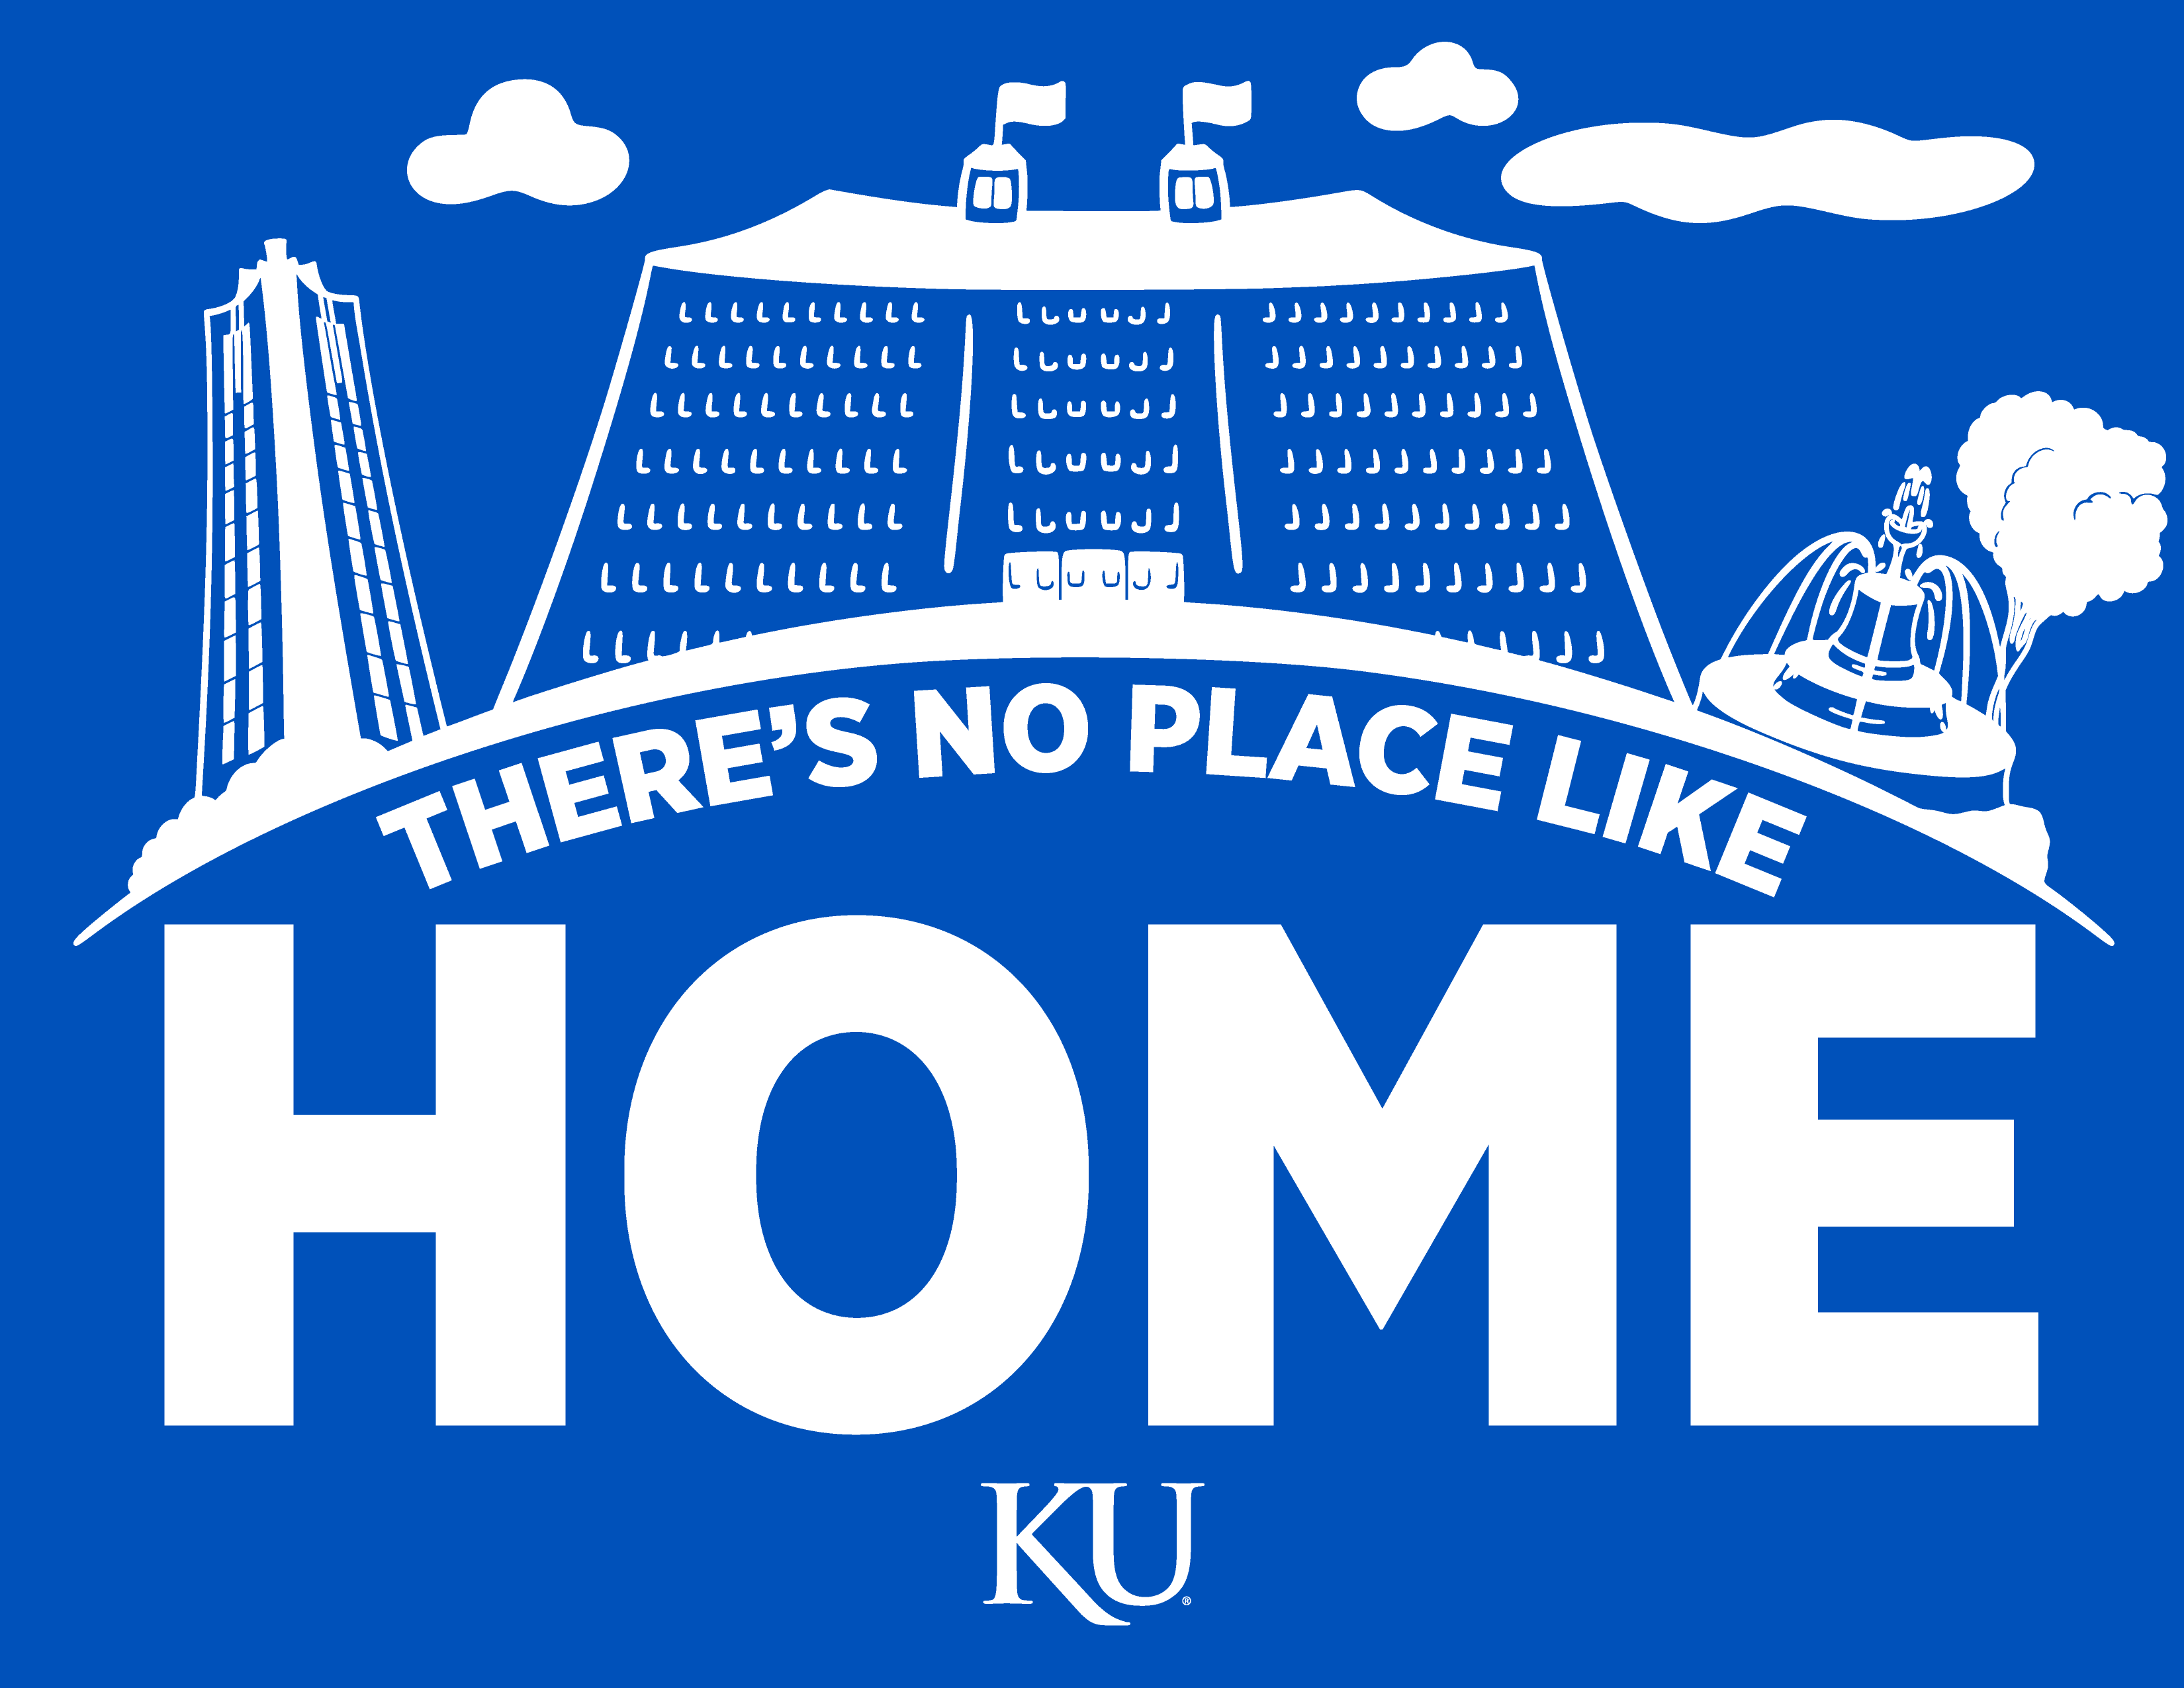 KU Campus Skyline - There's No Place Like Home - '47 T-Shirt Graphic